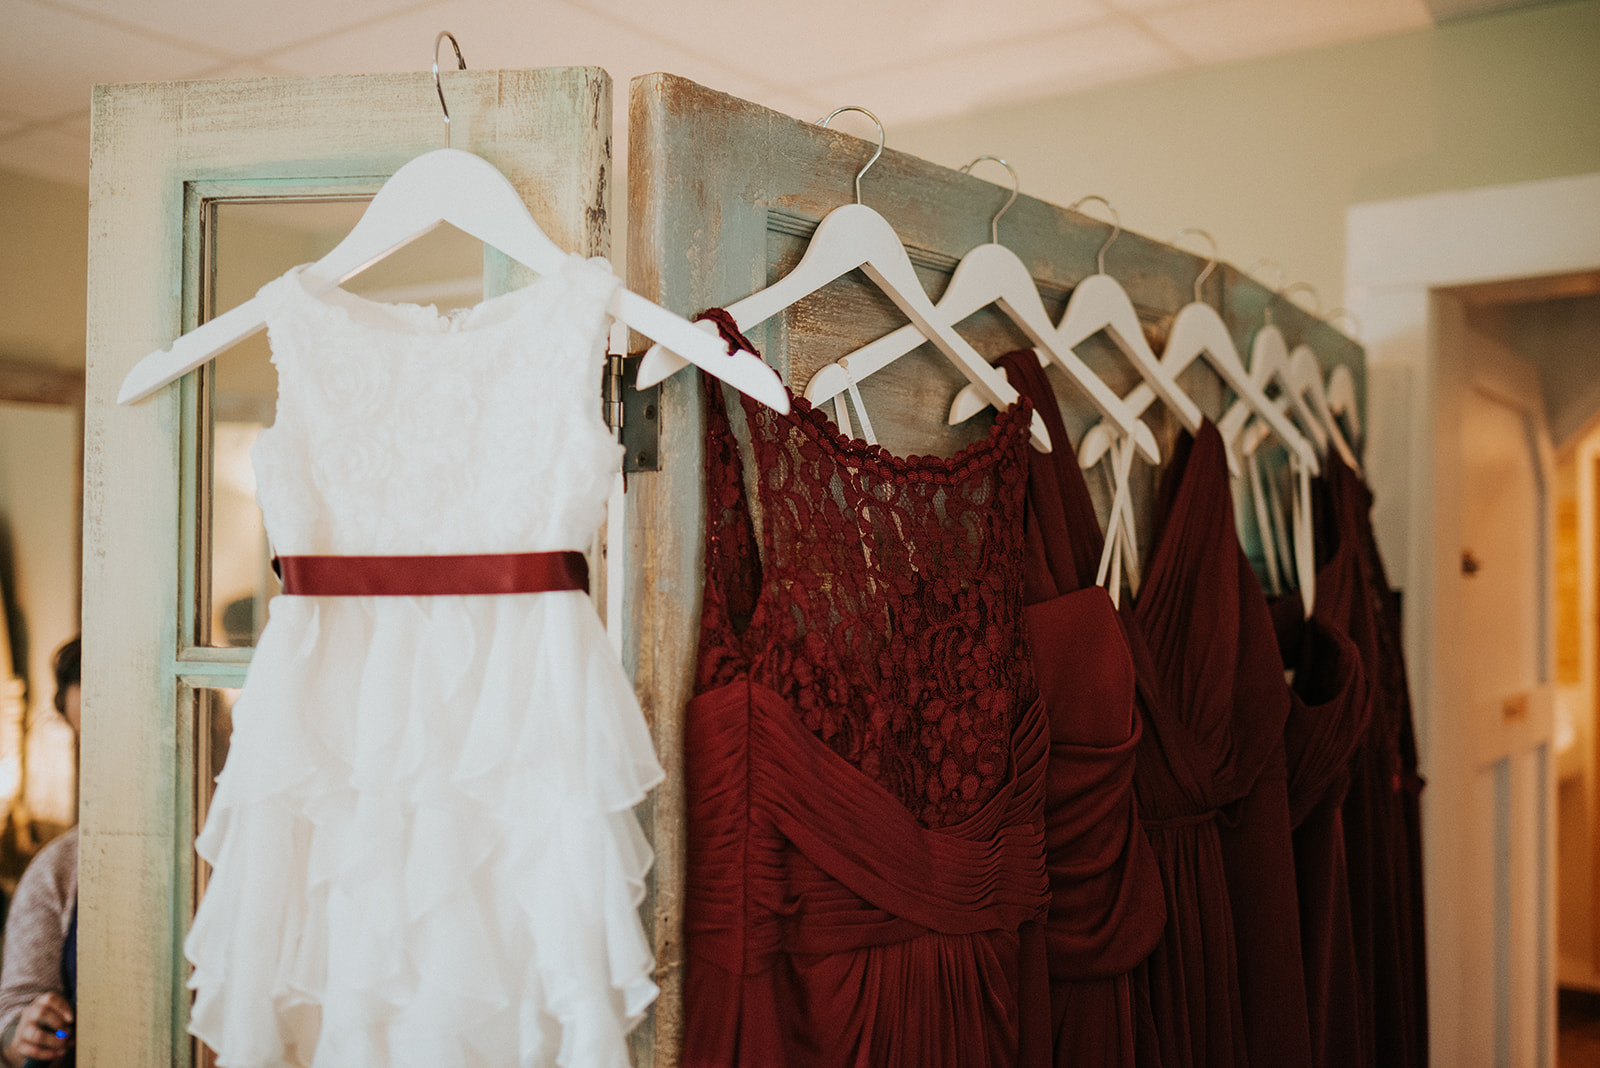 overthevineswisconsinwedding_0204.jpg